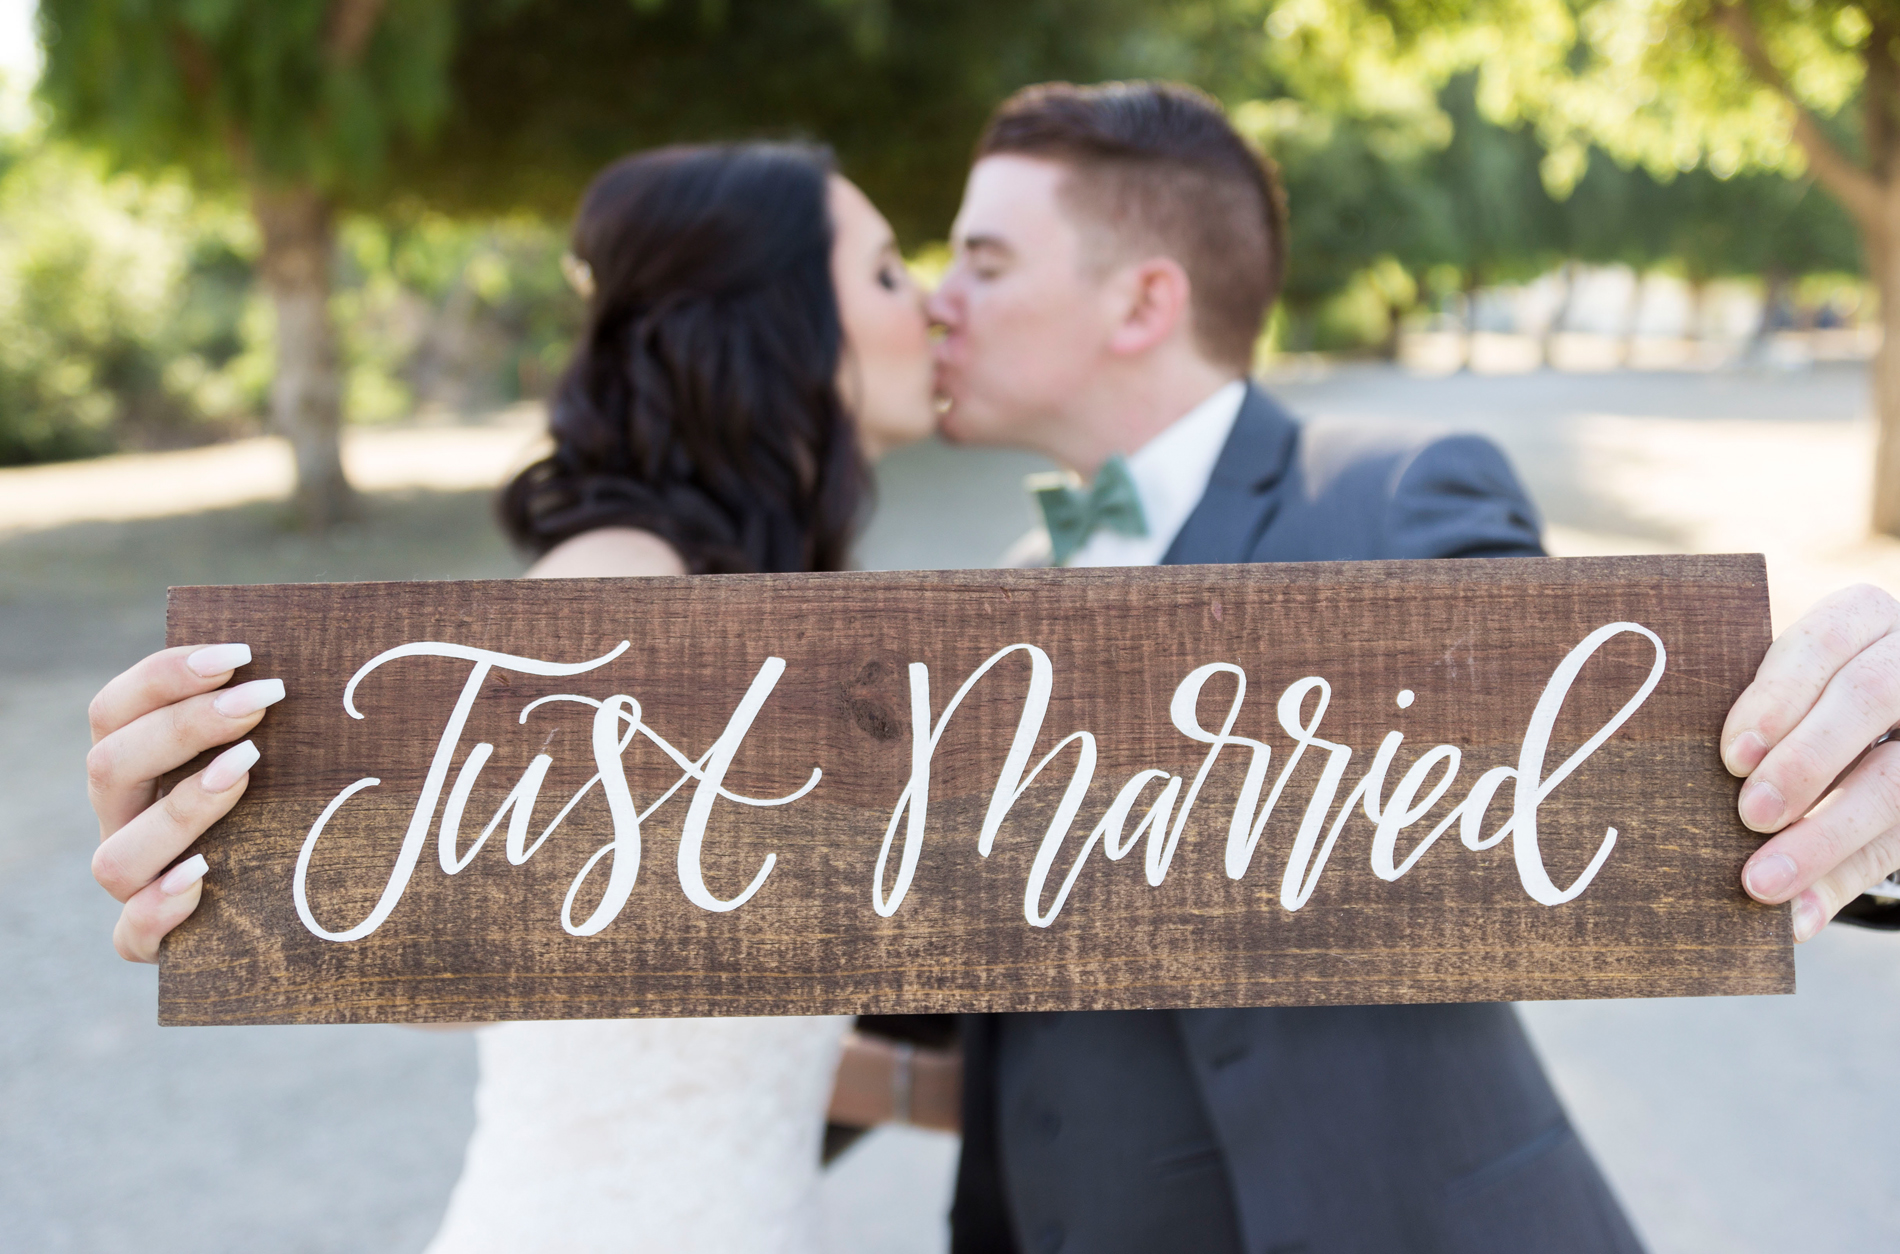 Wooden Just Married Sign - A Rustic-Vintage Glam McCoy Equestrian Center Wedding - Peterson Design & Photography